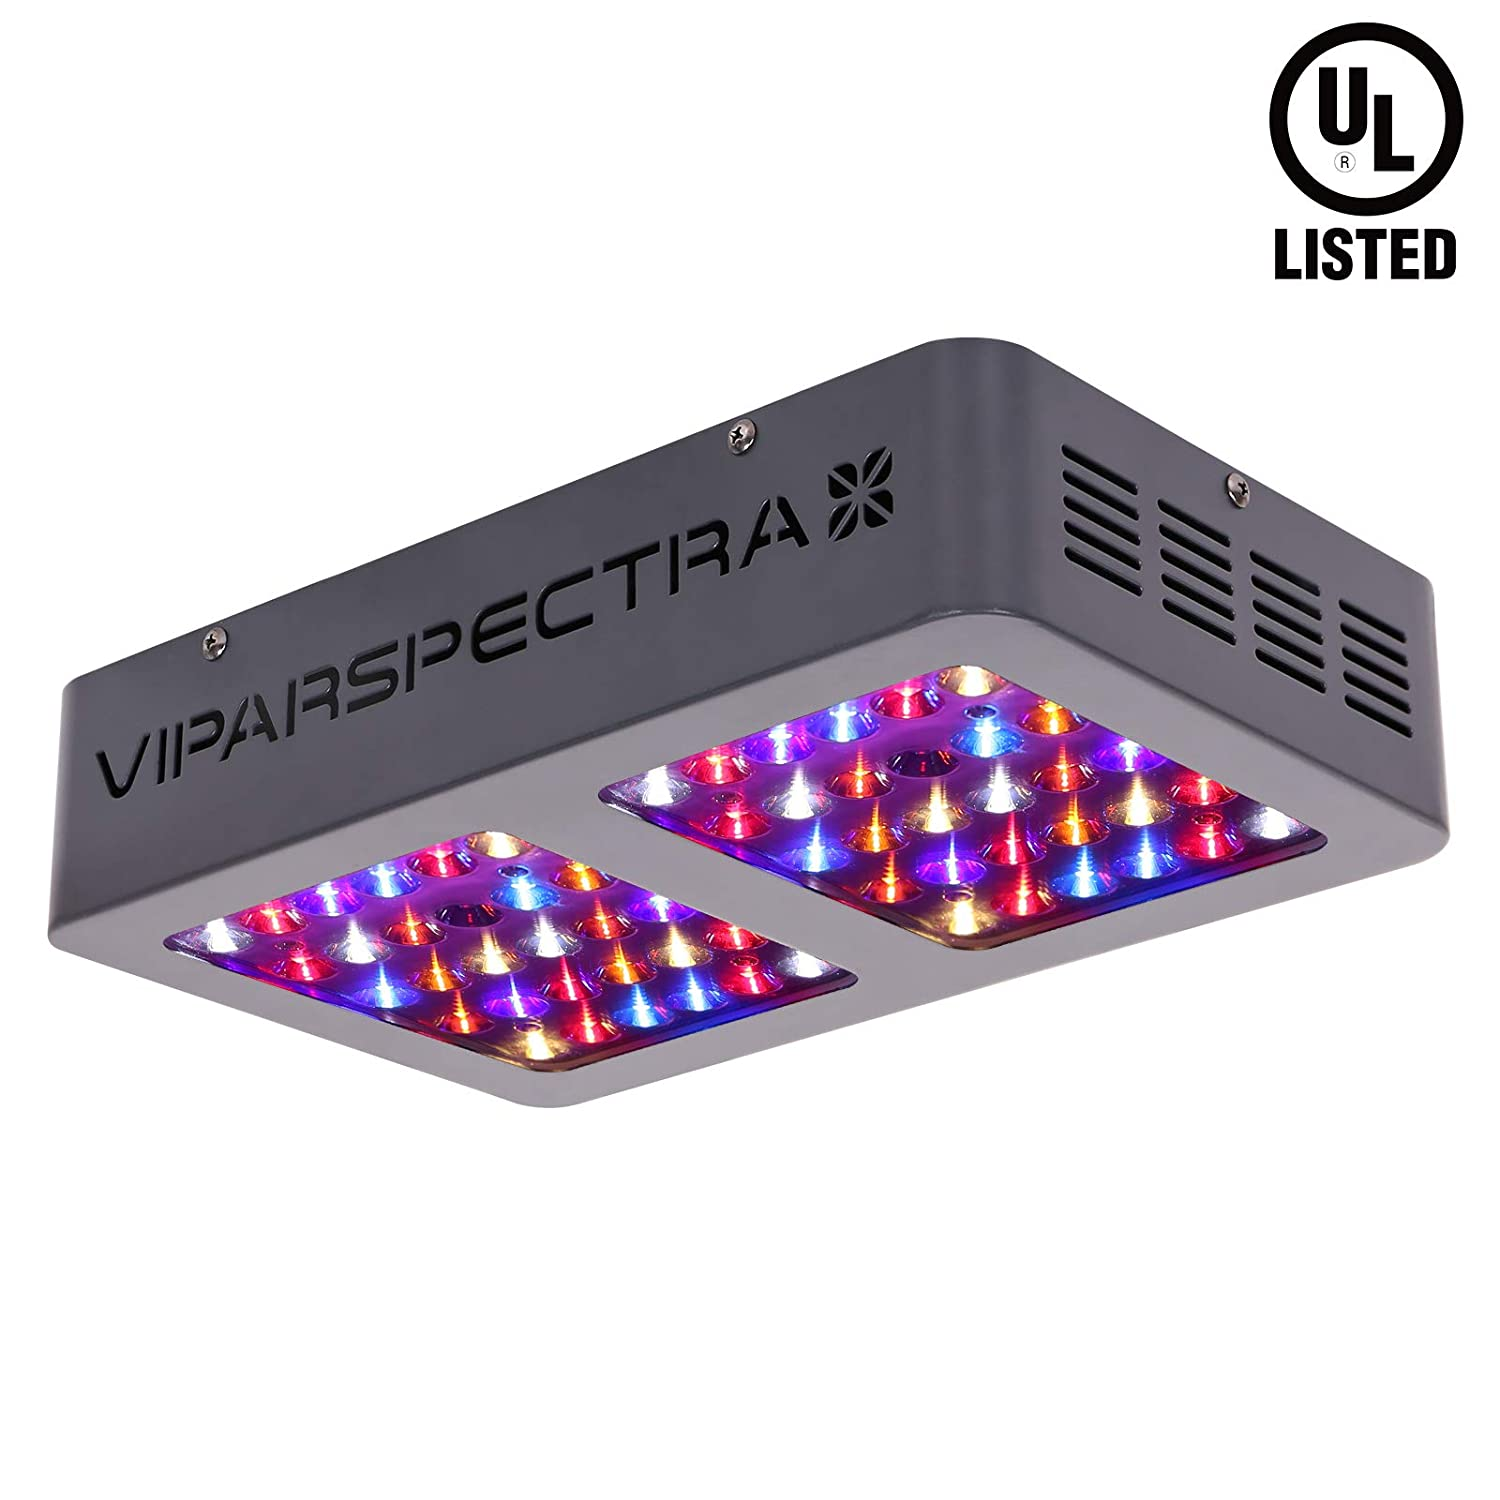 VIPARSPECTRA Reflector Series 300W